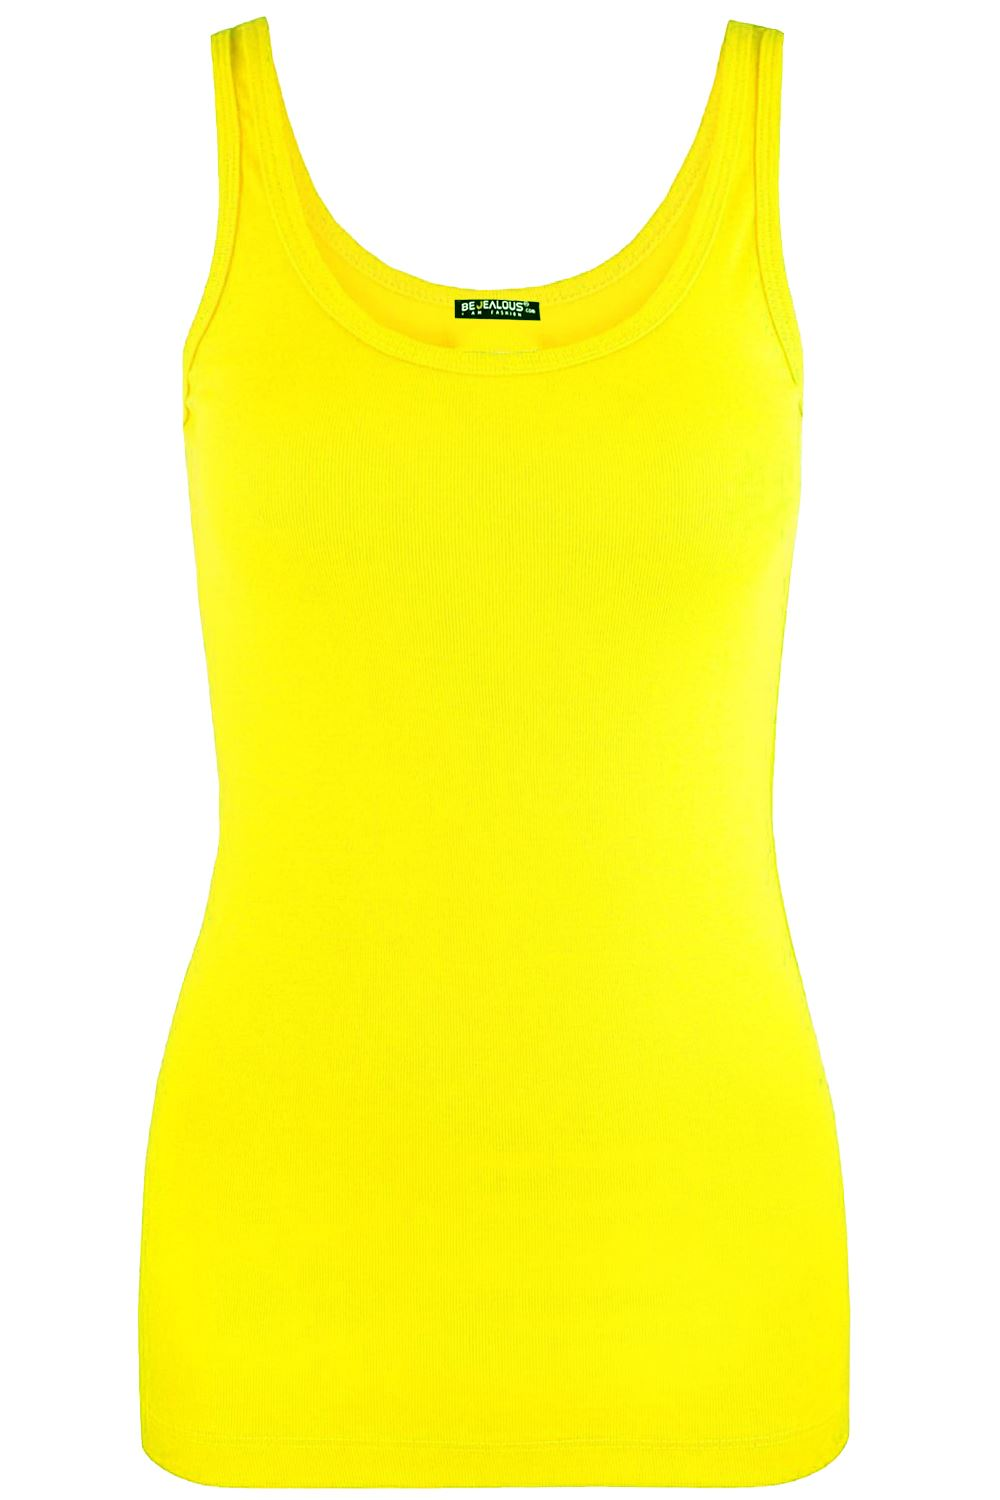 Womens-Ladies-Sleeveless-Tank-Tops-Casual-Cotton-Vests-Plain-T-Shirt-Vest-Top